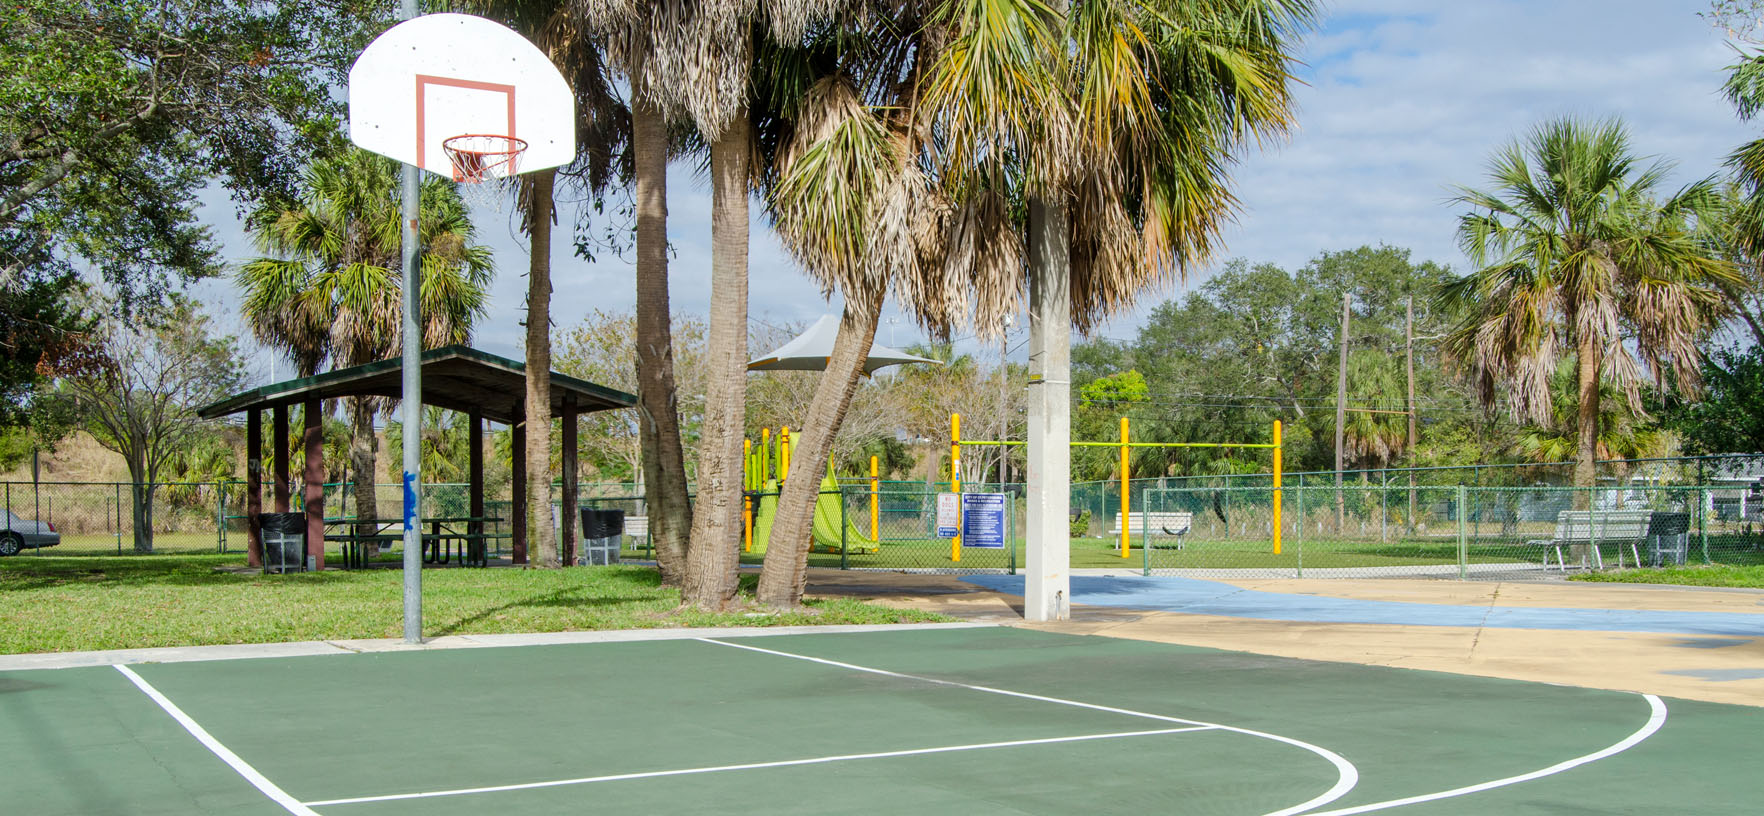 Playlot 1 outdoor basketball court